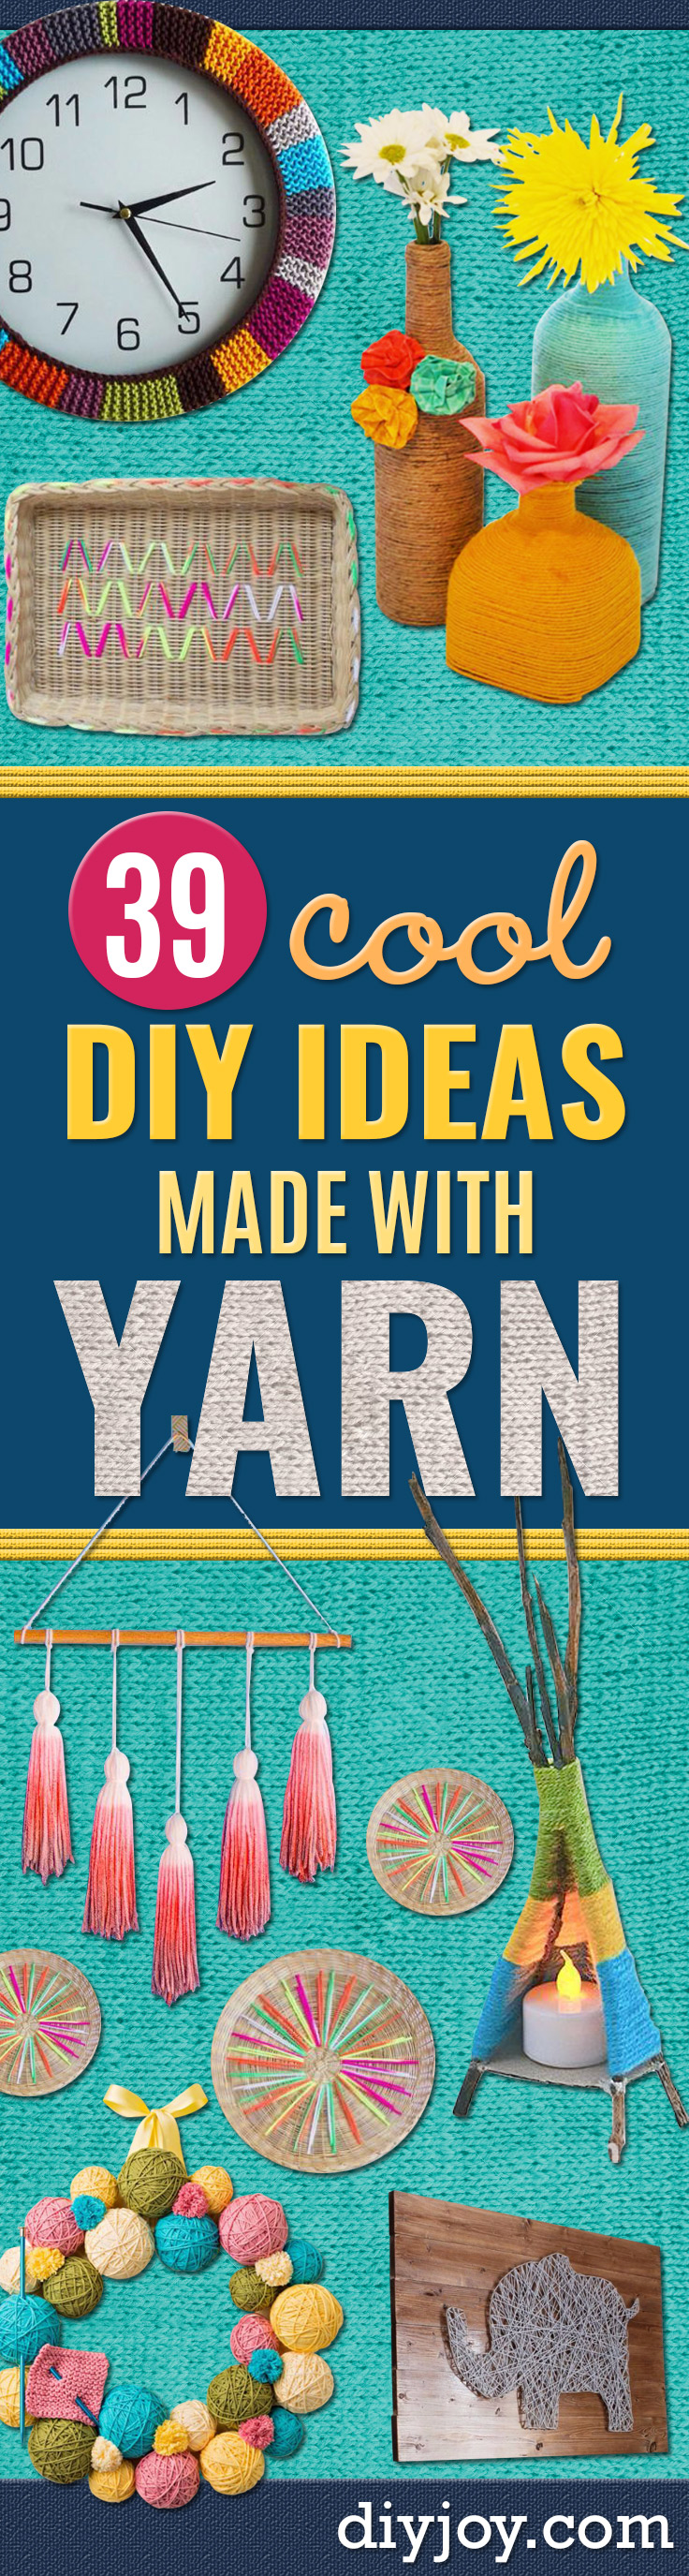 DIY Ideas With Yarn and Best Yarn Crafts - Wall Hangings, Easy Dream Catchers, Crochet Ideas for Teens, Adults and Kids - Knitting , No Sew and Weaving Projects Make Awesome Wall Art and Home Decor on A Budget http://diyjoy.com/diy-ideas-yarn